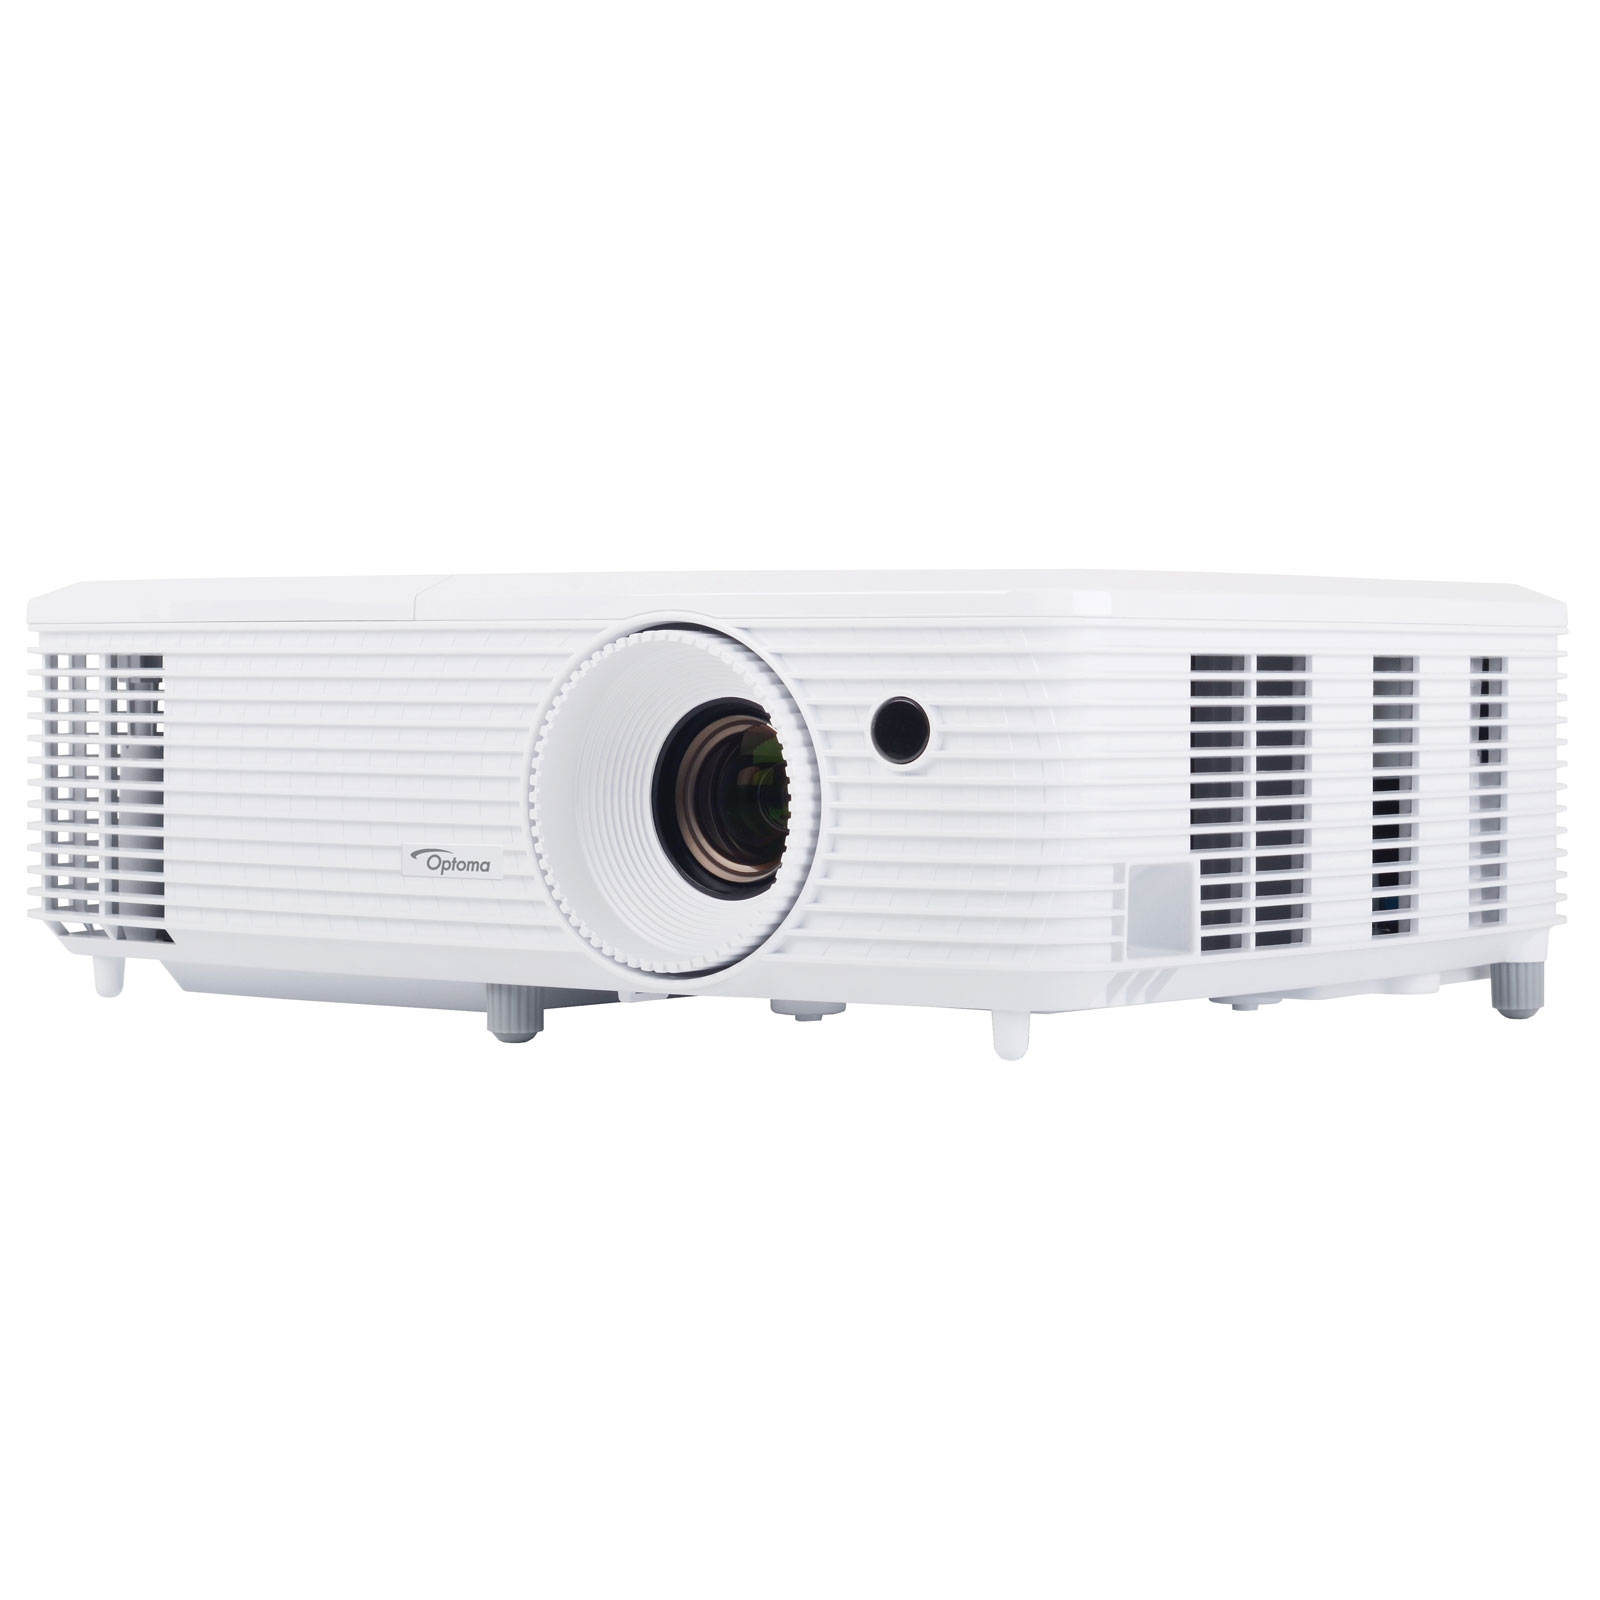 Optoma hd27 vid oprojecteur optoma sur - Support plafond videoprojecteur optoma ...